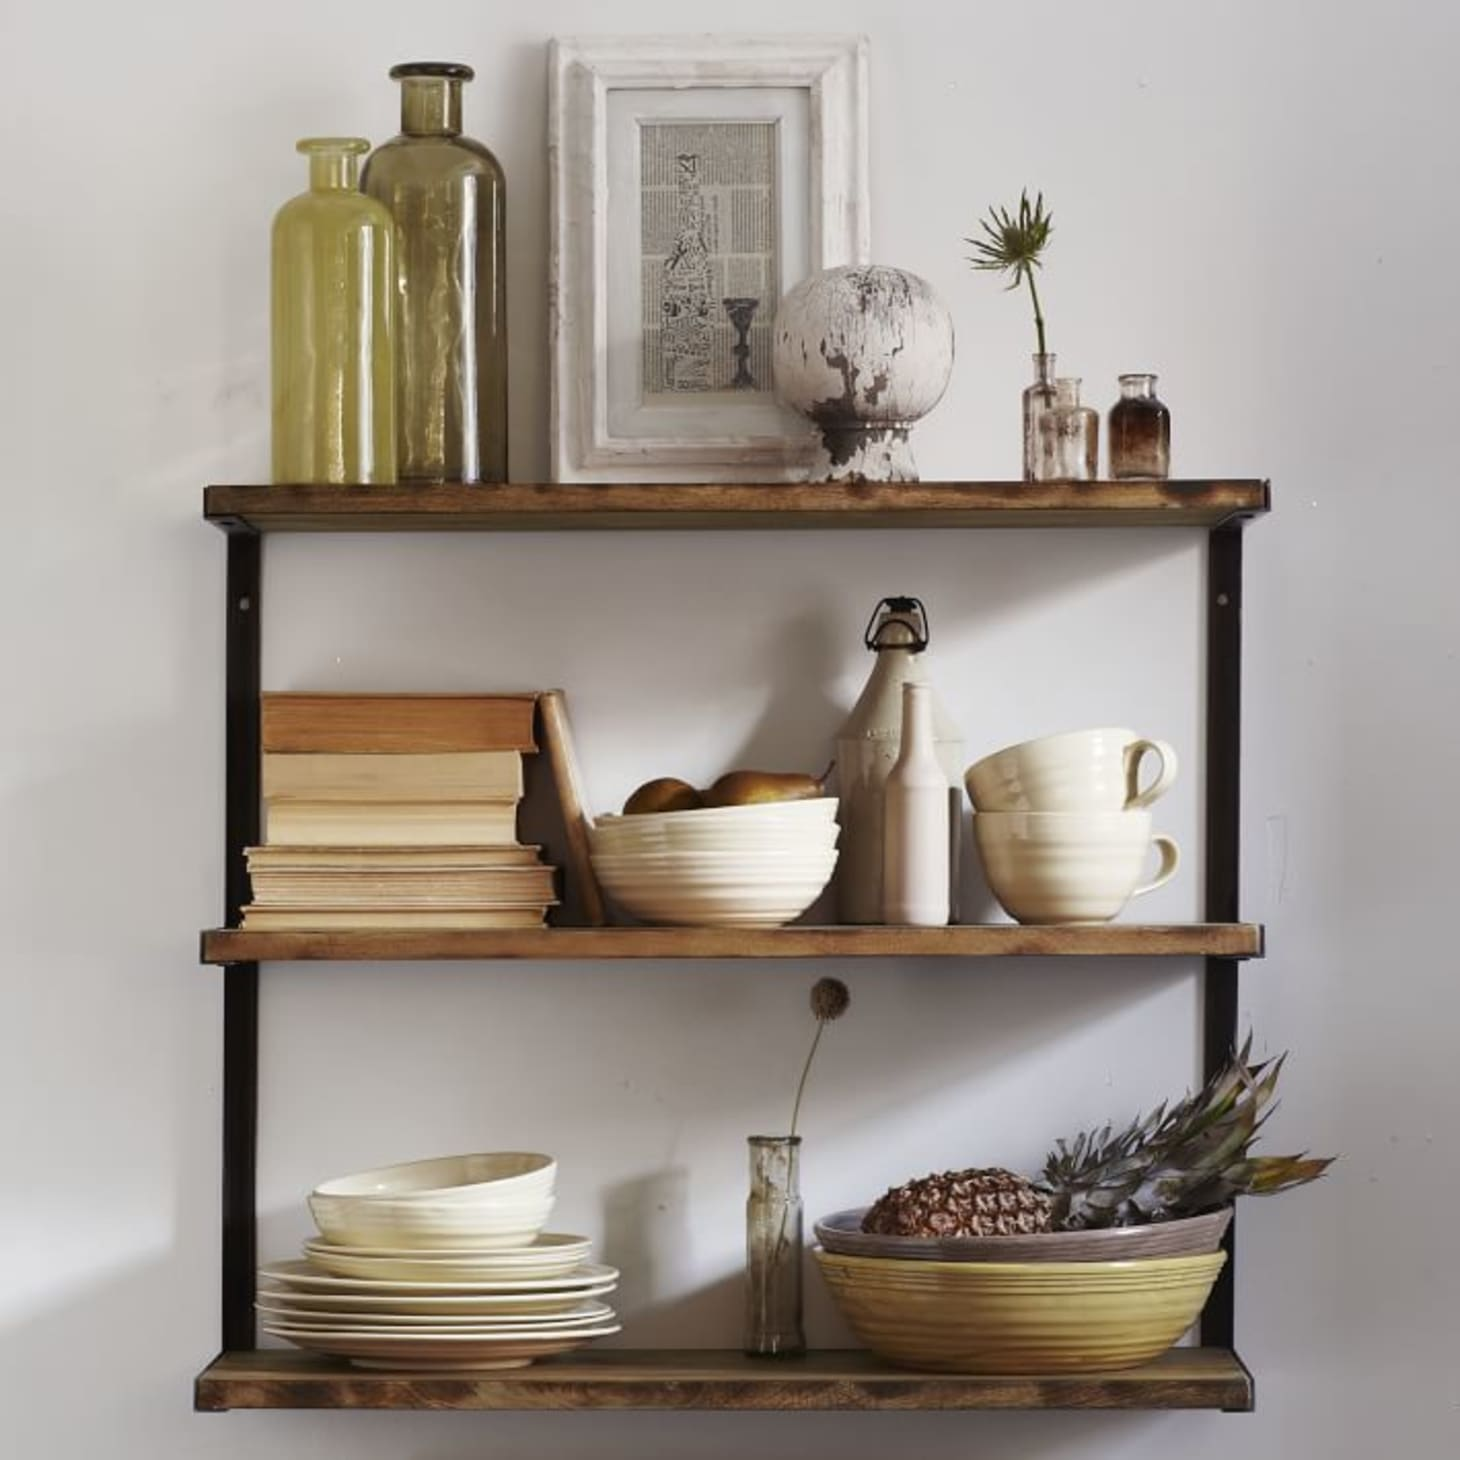 Storage Solutions For Small Kitchens With No Pantry Kitchn